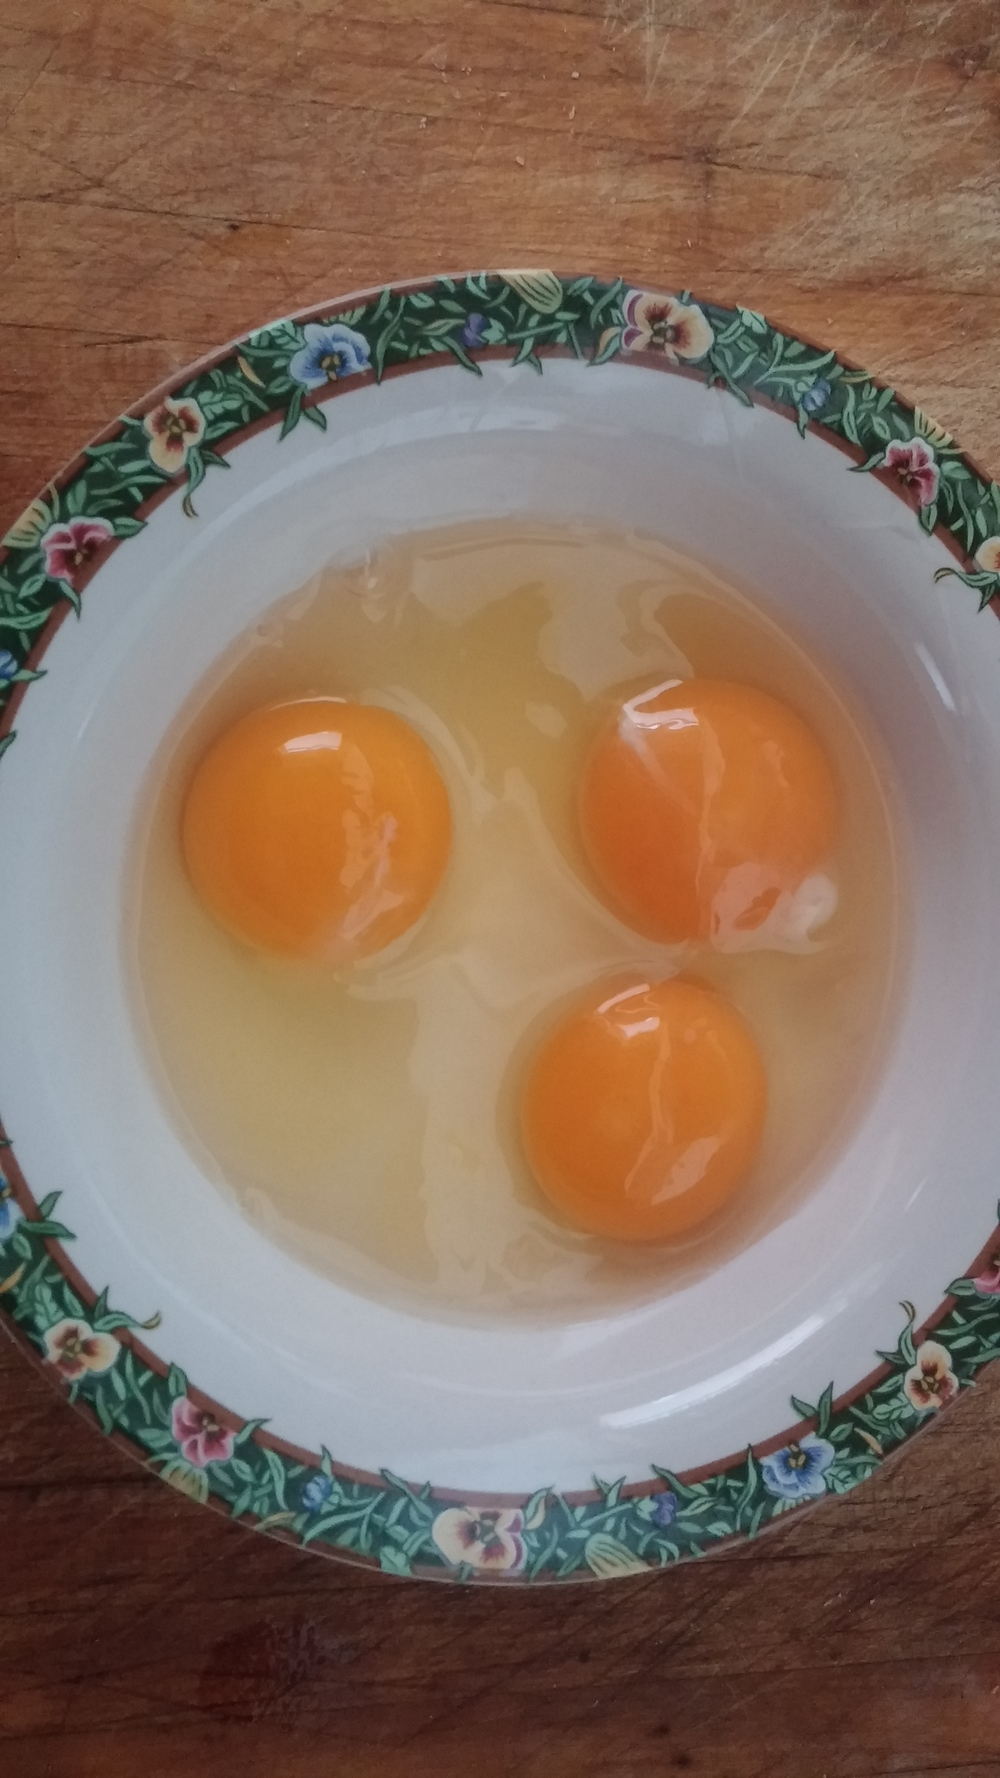 Look at those yolks! It looks like those chickens are snacking on the right things.